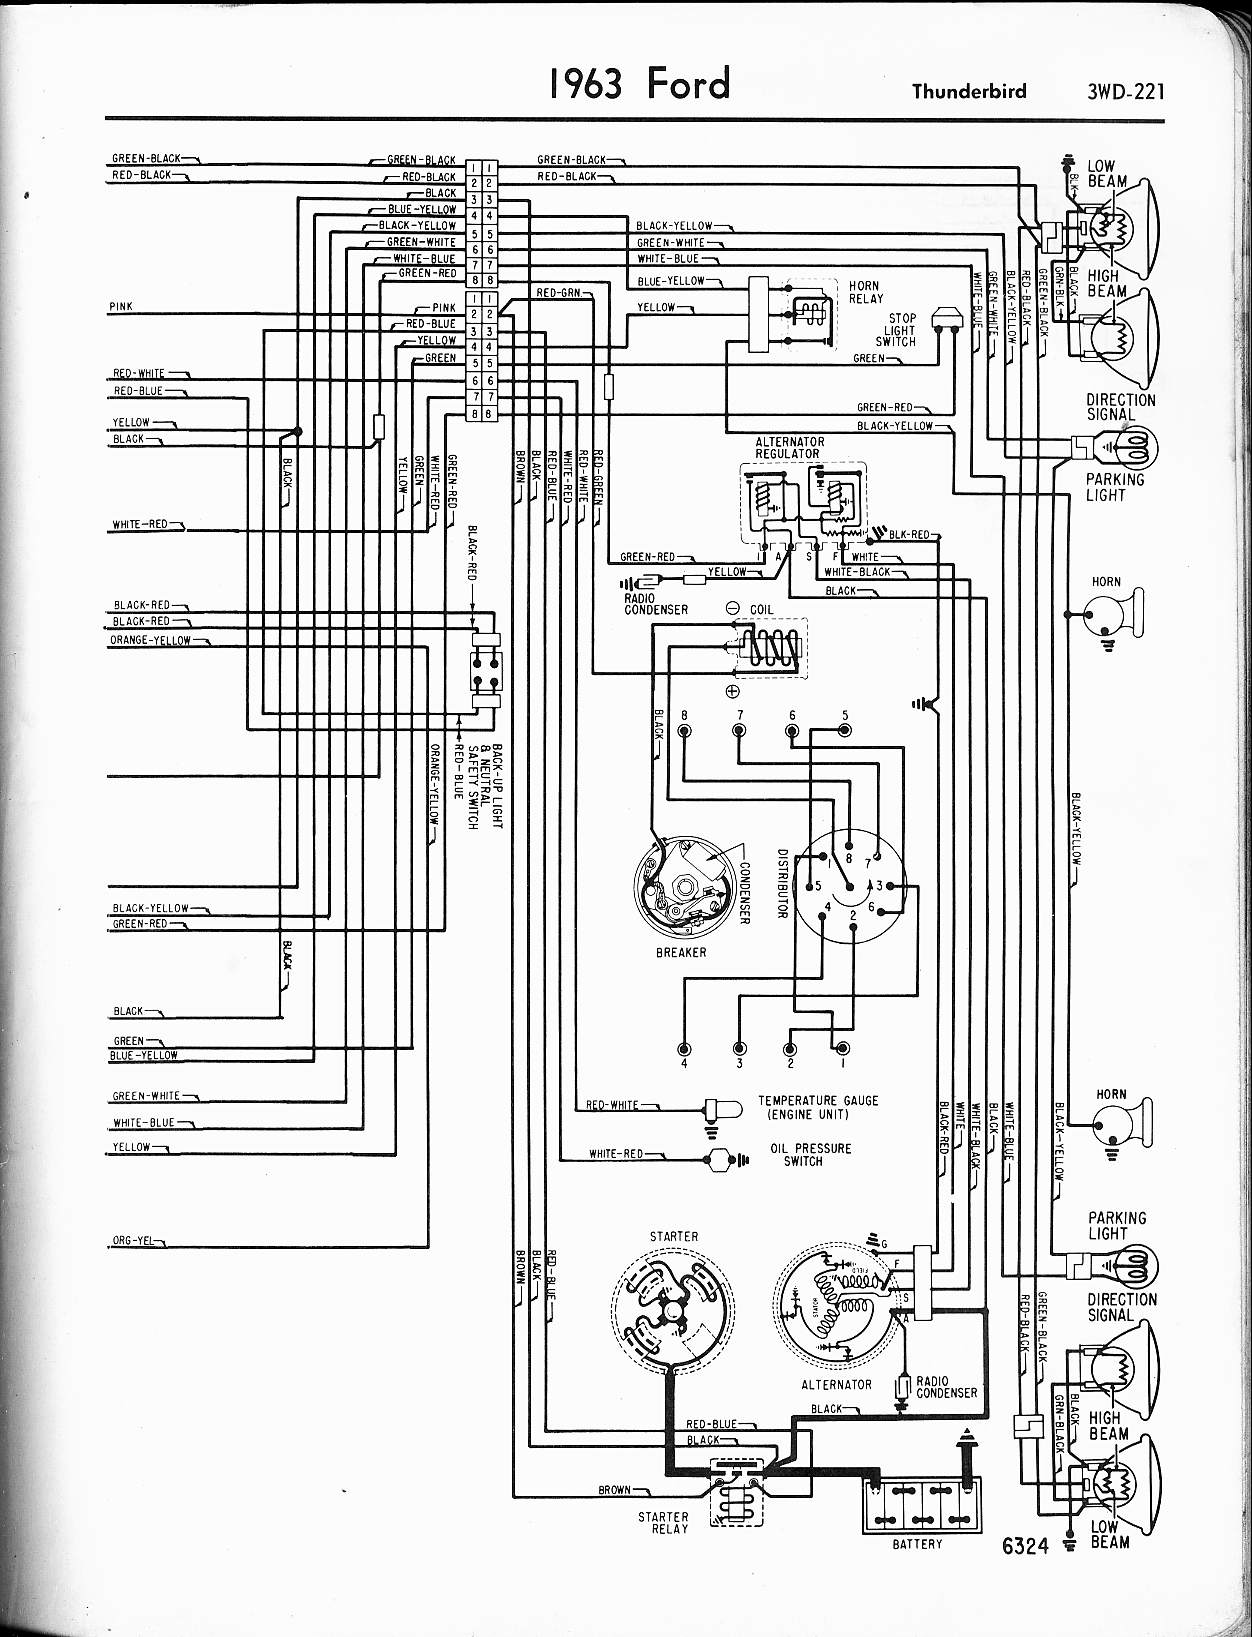 MWire5765 221 57 65 ford wiring diagrams 1970 ford wiring diagram at soozxer.org